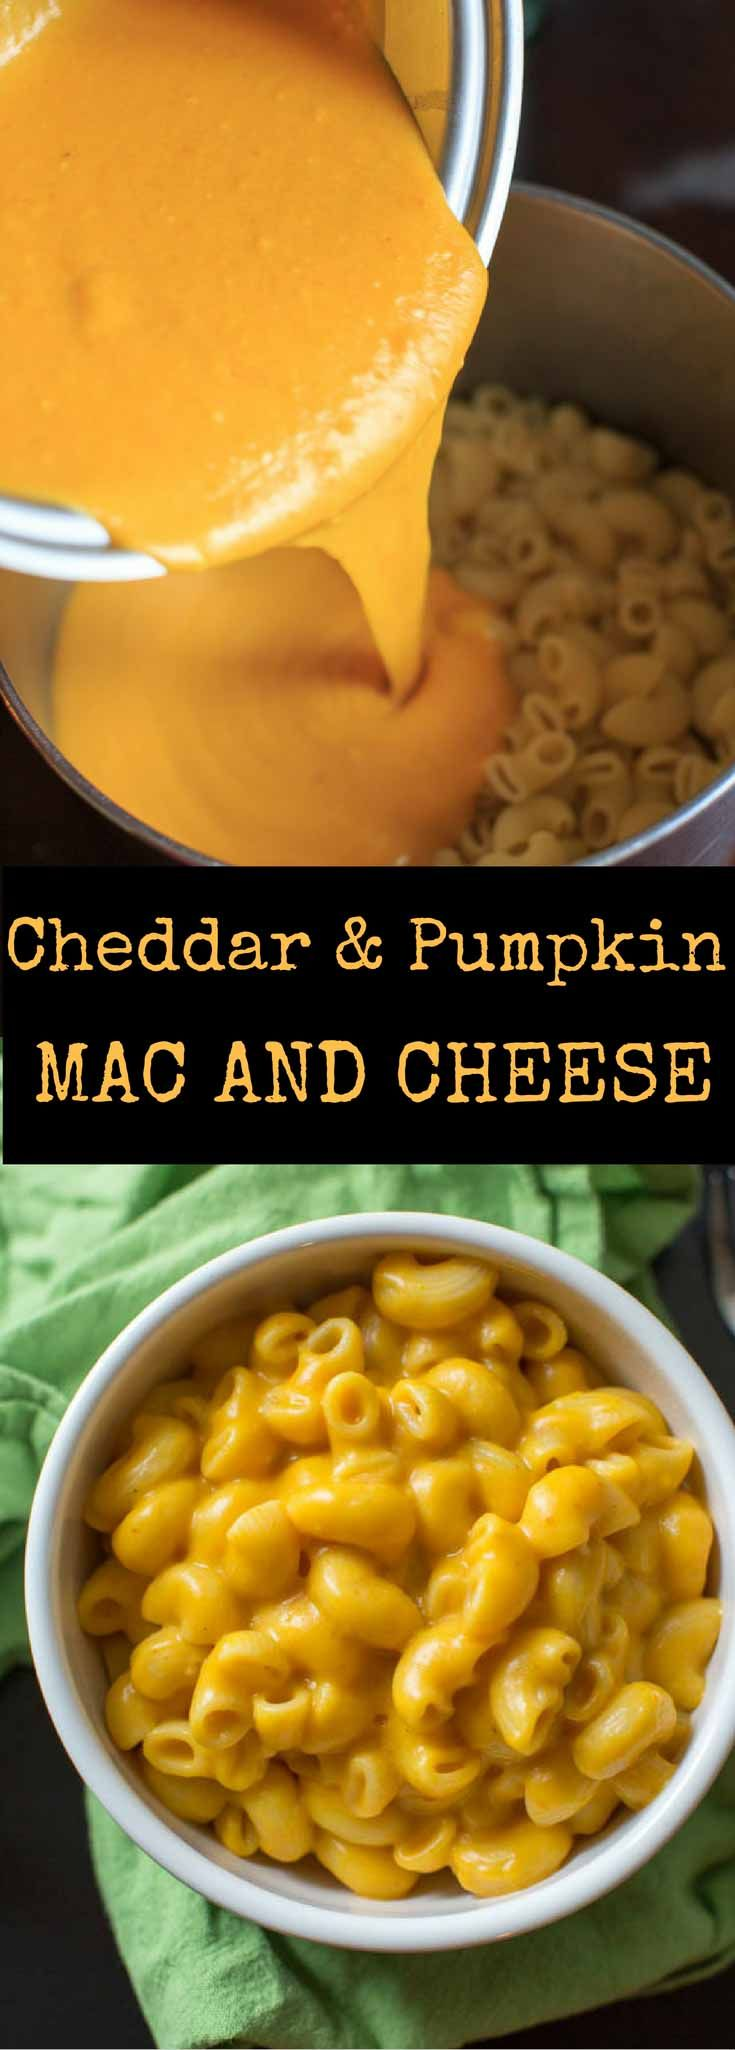 Cheddar Pumpkin Mac and Cheese is an easy and delicious autumn meal. Option to serve as stovetop macaroni in under 30 minutes, or turn into a crunchy casserole.